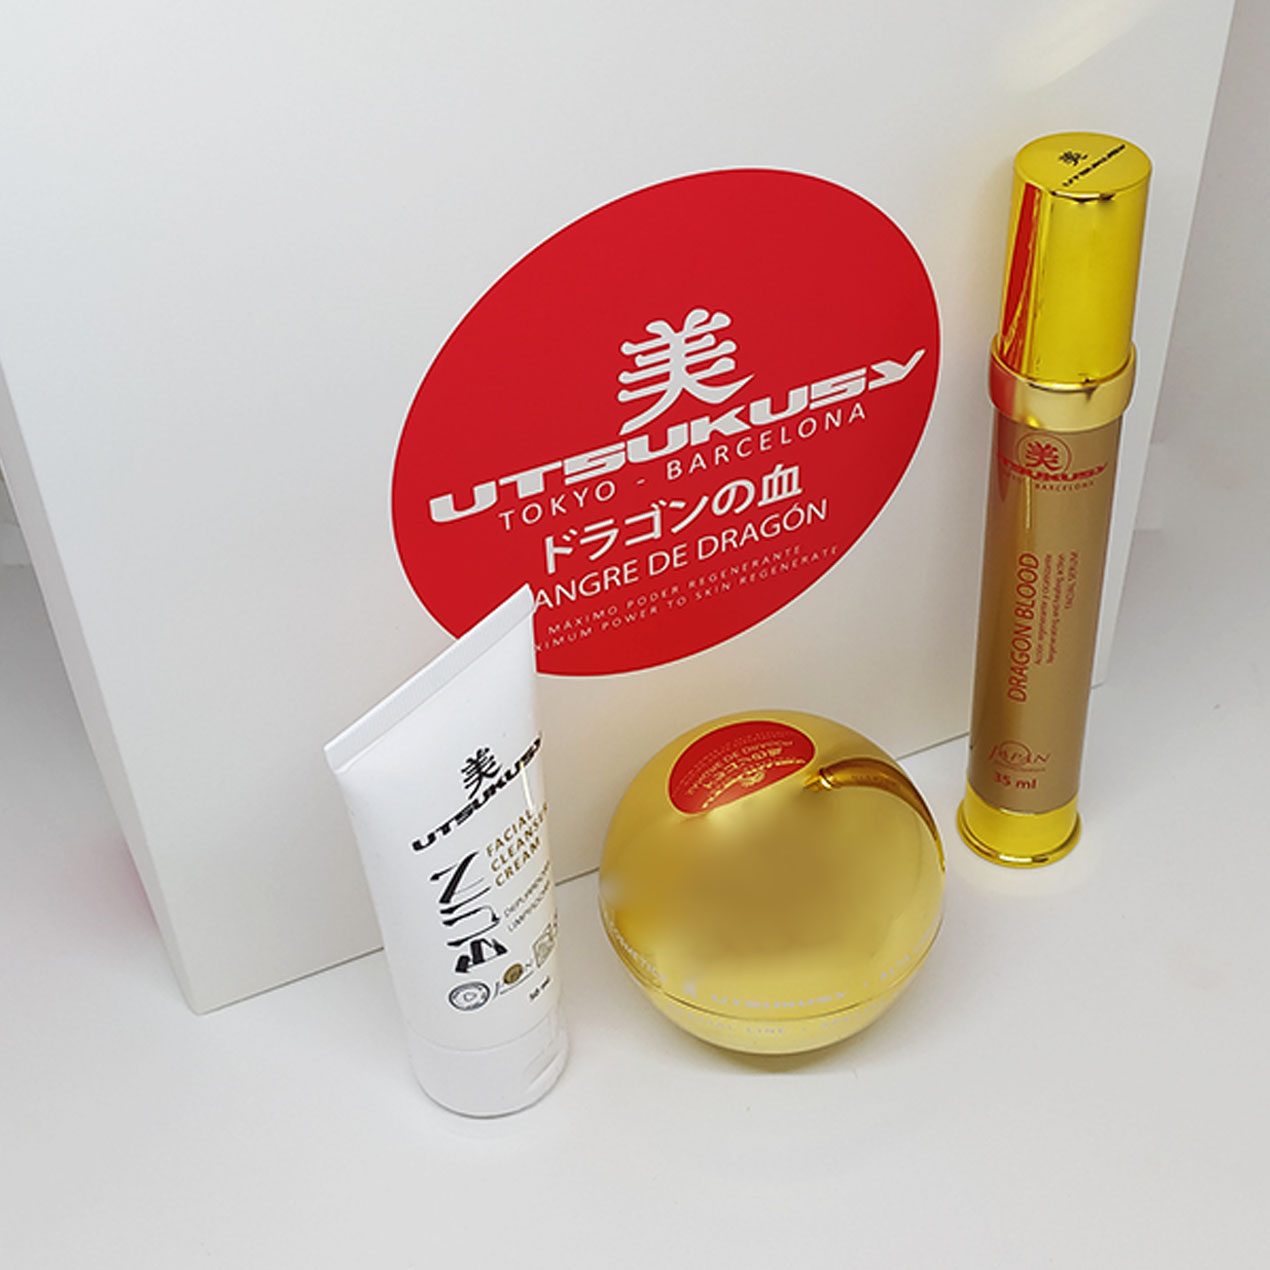 Dragon Blood Home Care Set von Utsukusy Cosmetics